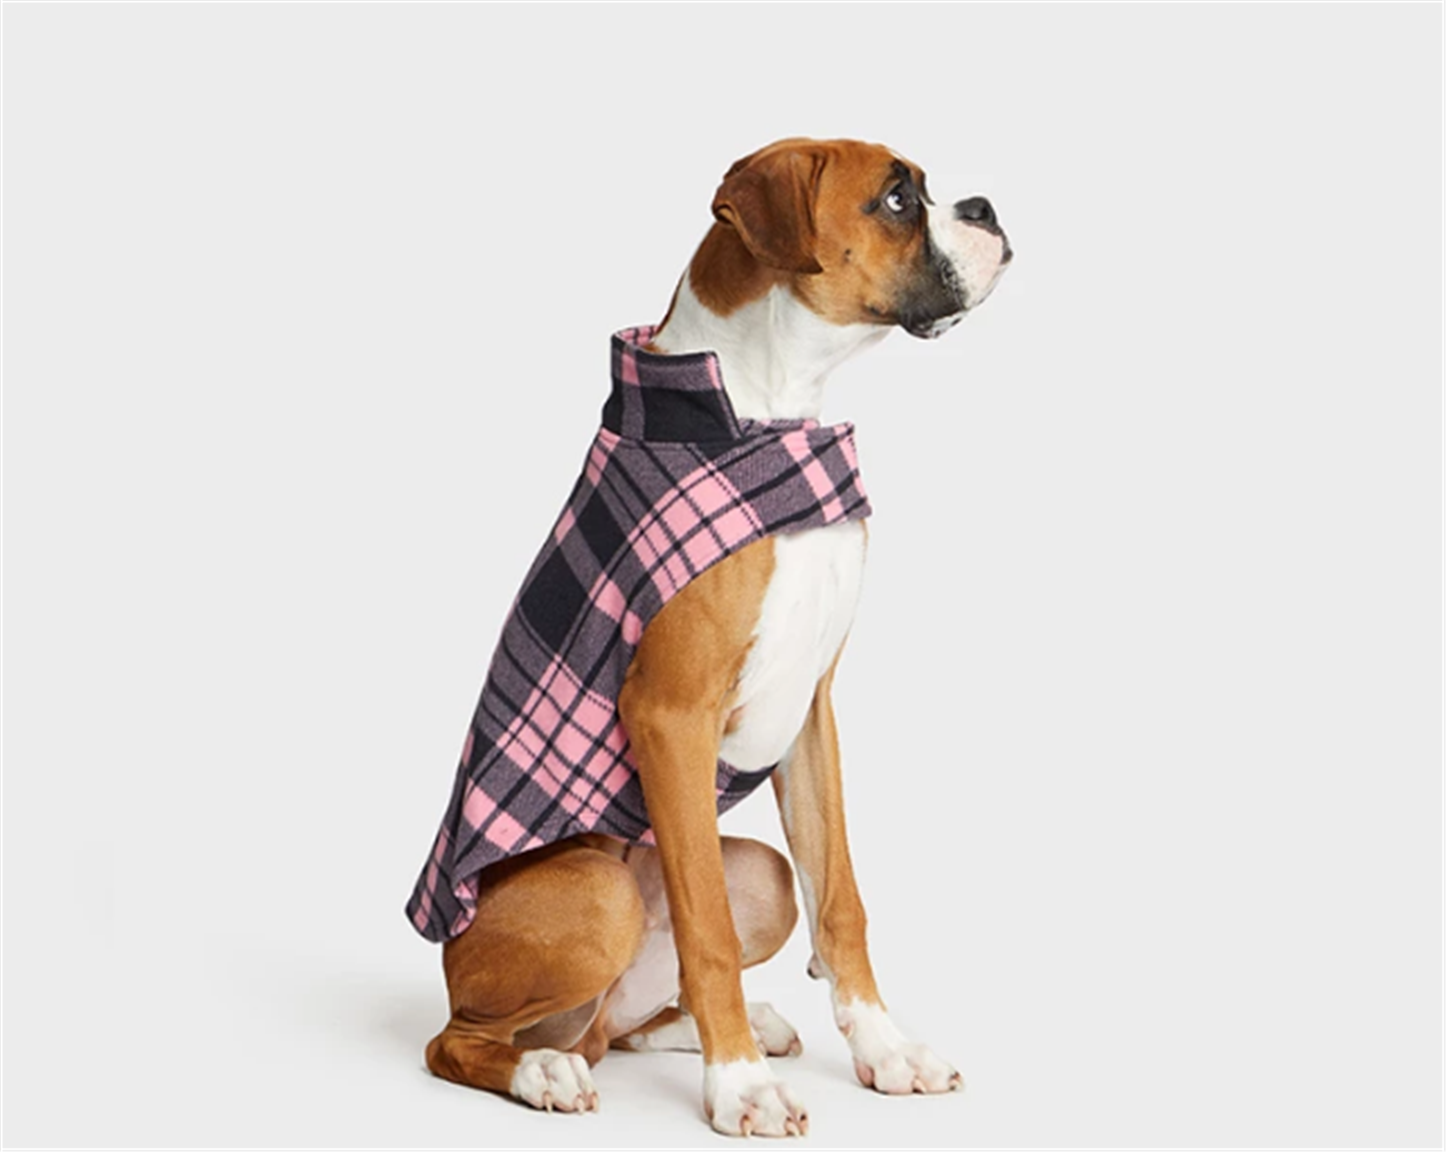 32Degrees.com – One Day Flash Sale $4.99 Doggie Vests + 80% Off All Outerwear!